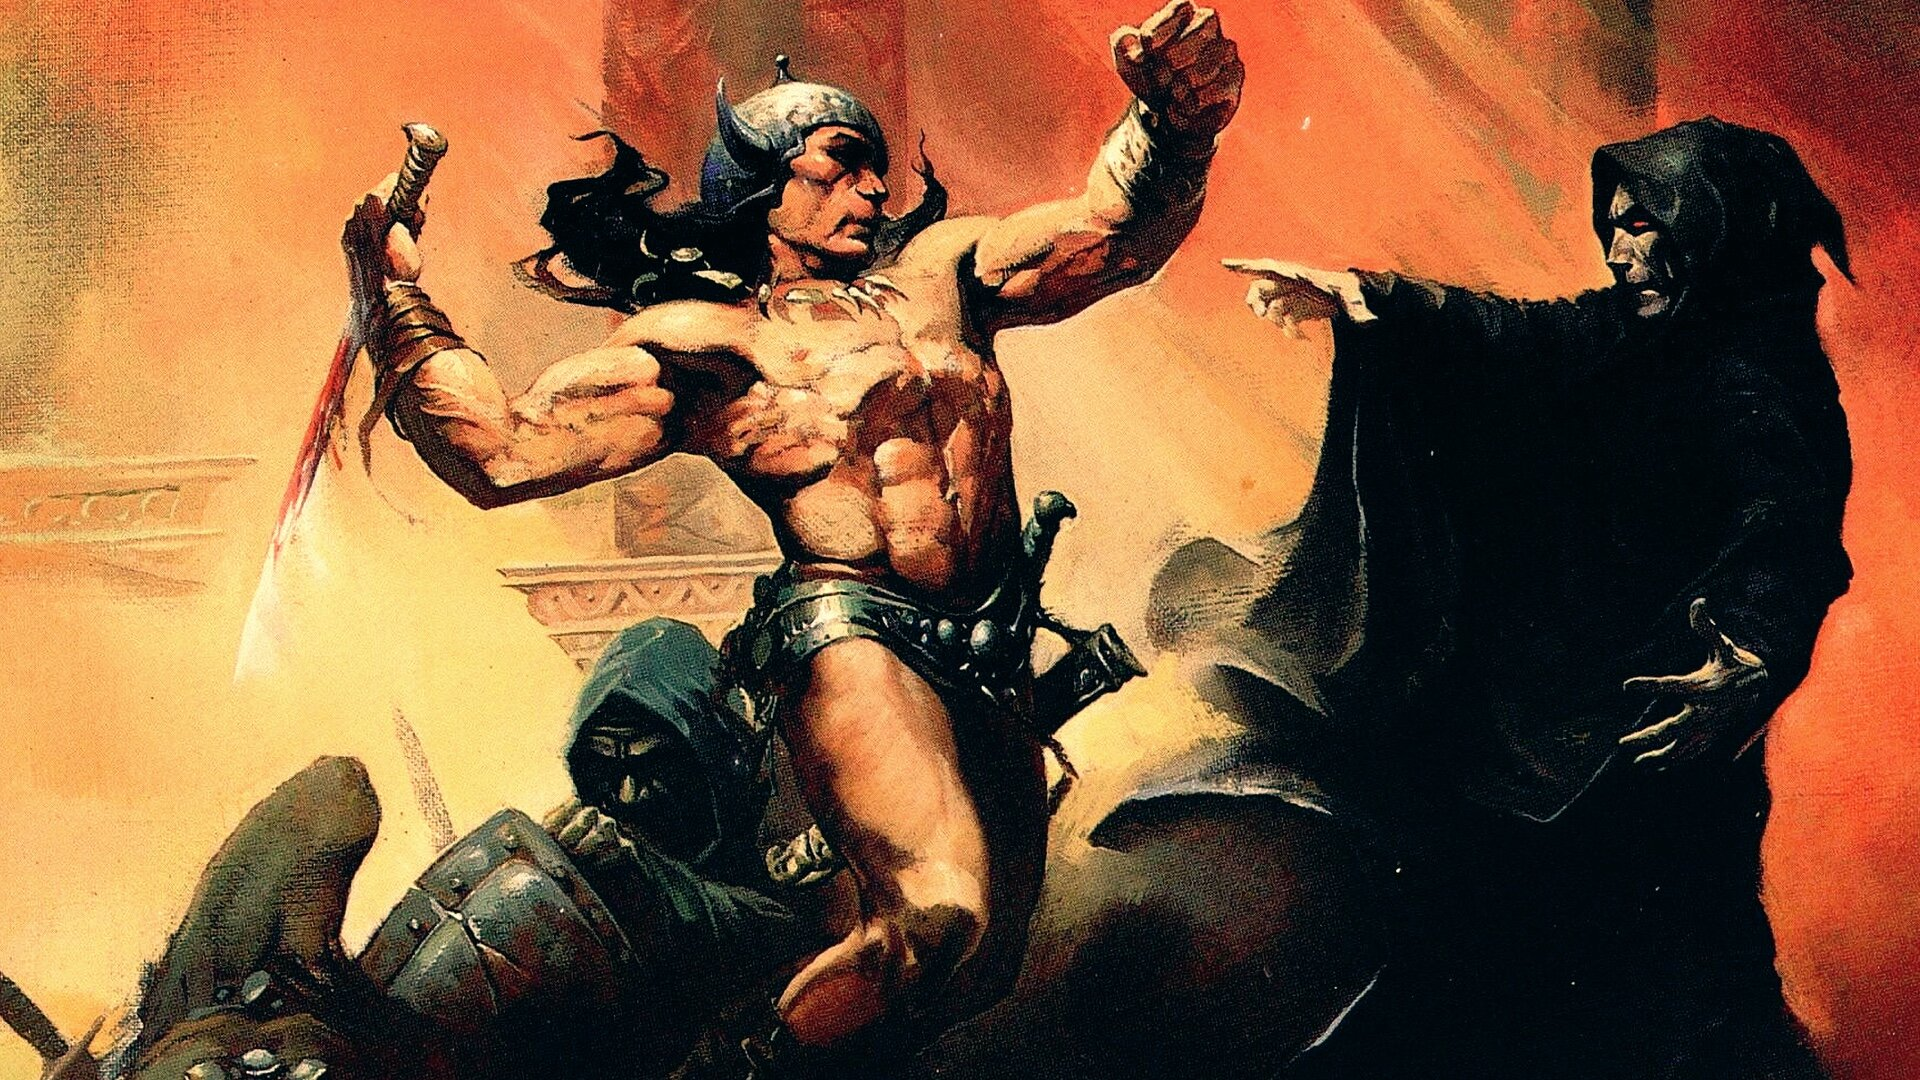 netflix-is-developing-a-live-action-conan-the-barbarian-series-social.jpg